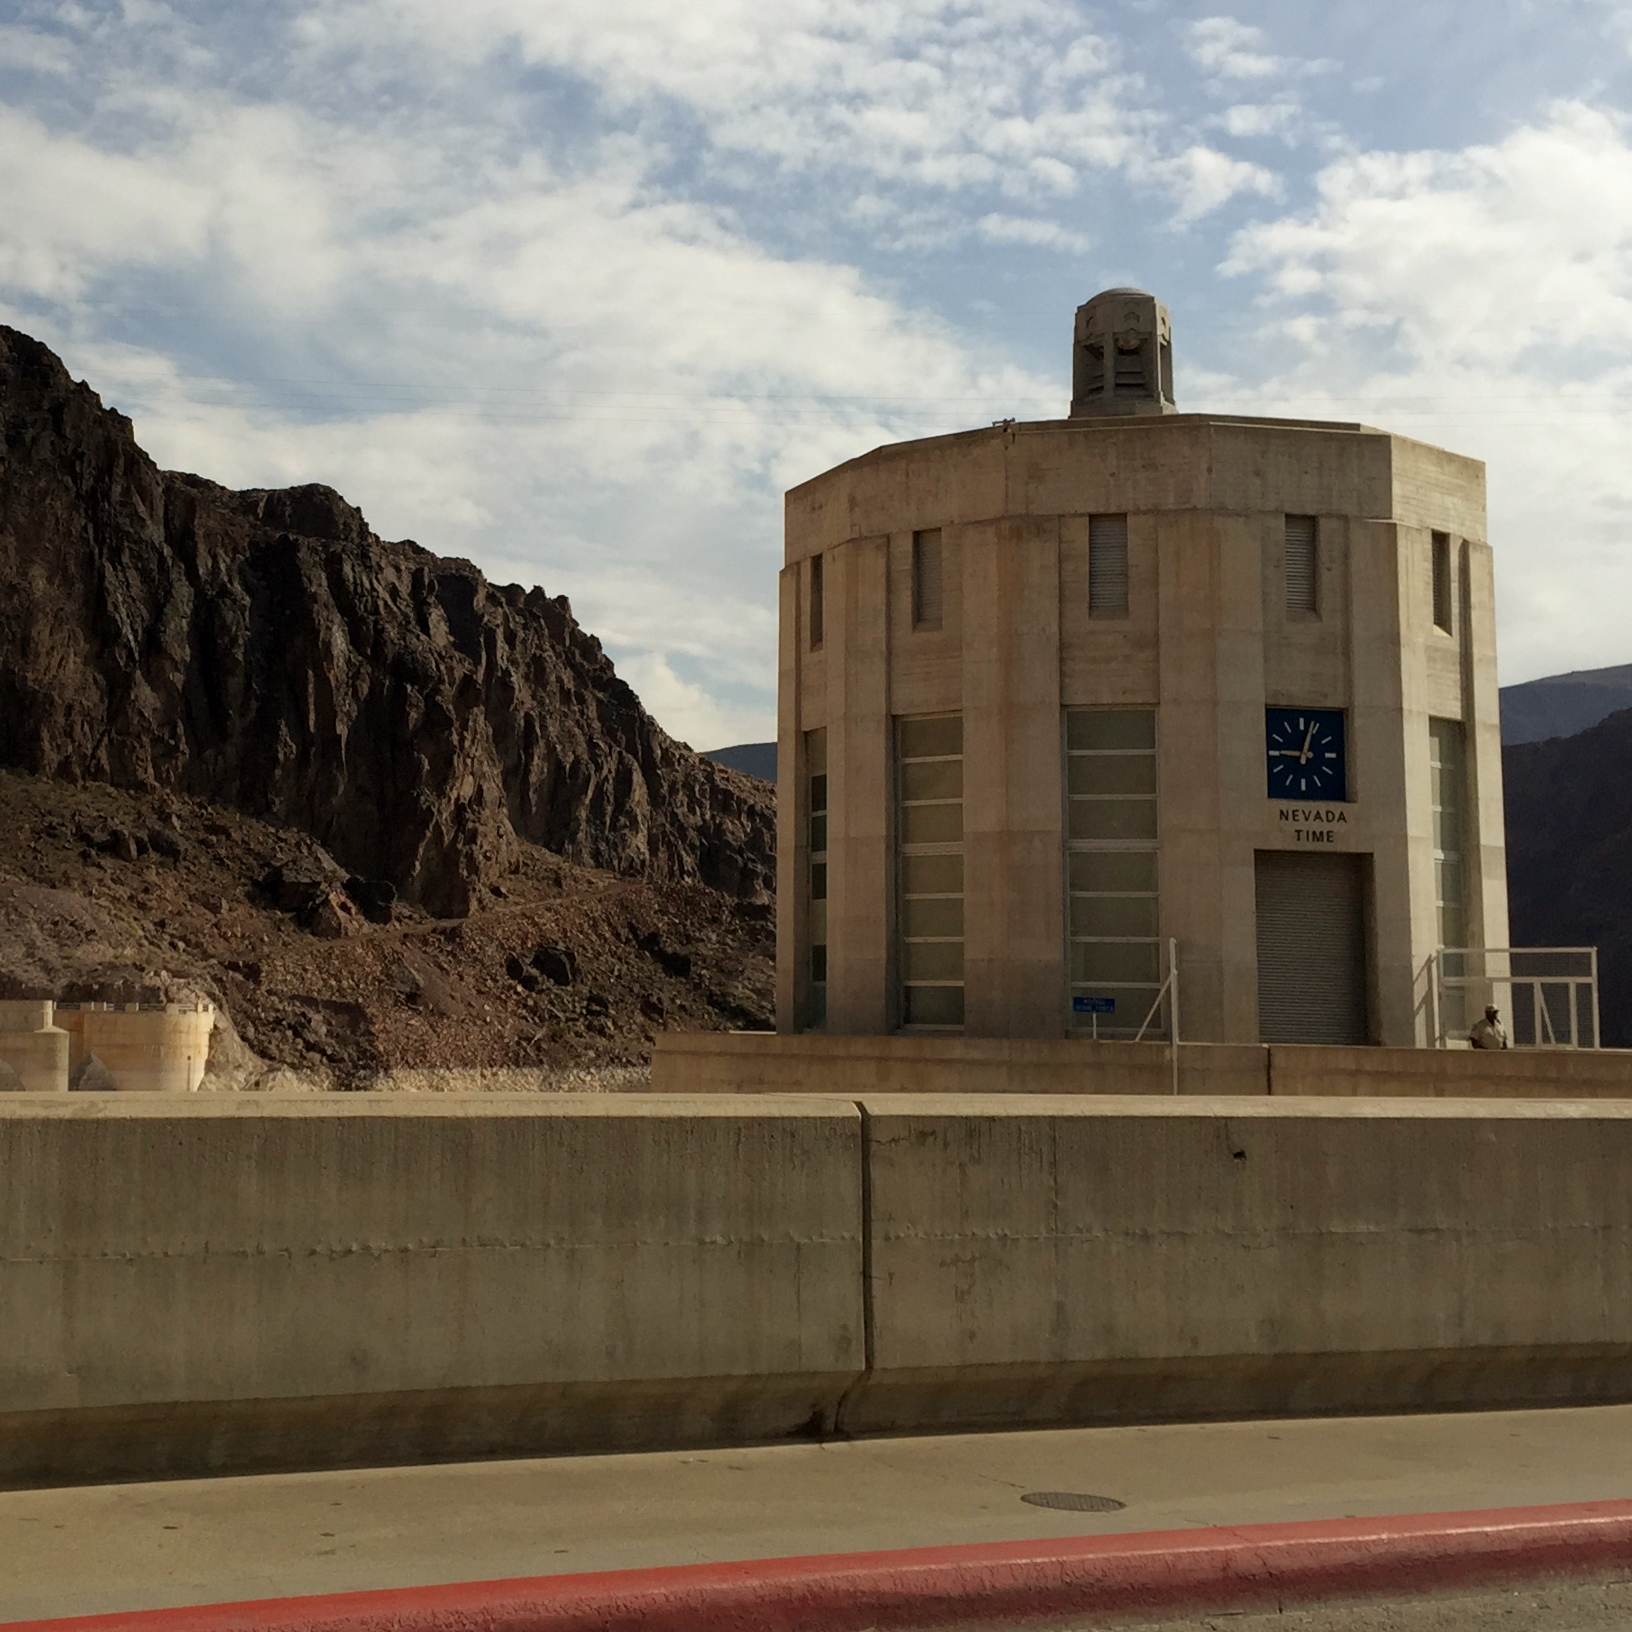 Road Trip: Hoover Dam Via Las Vegas | Larkie @ Large